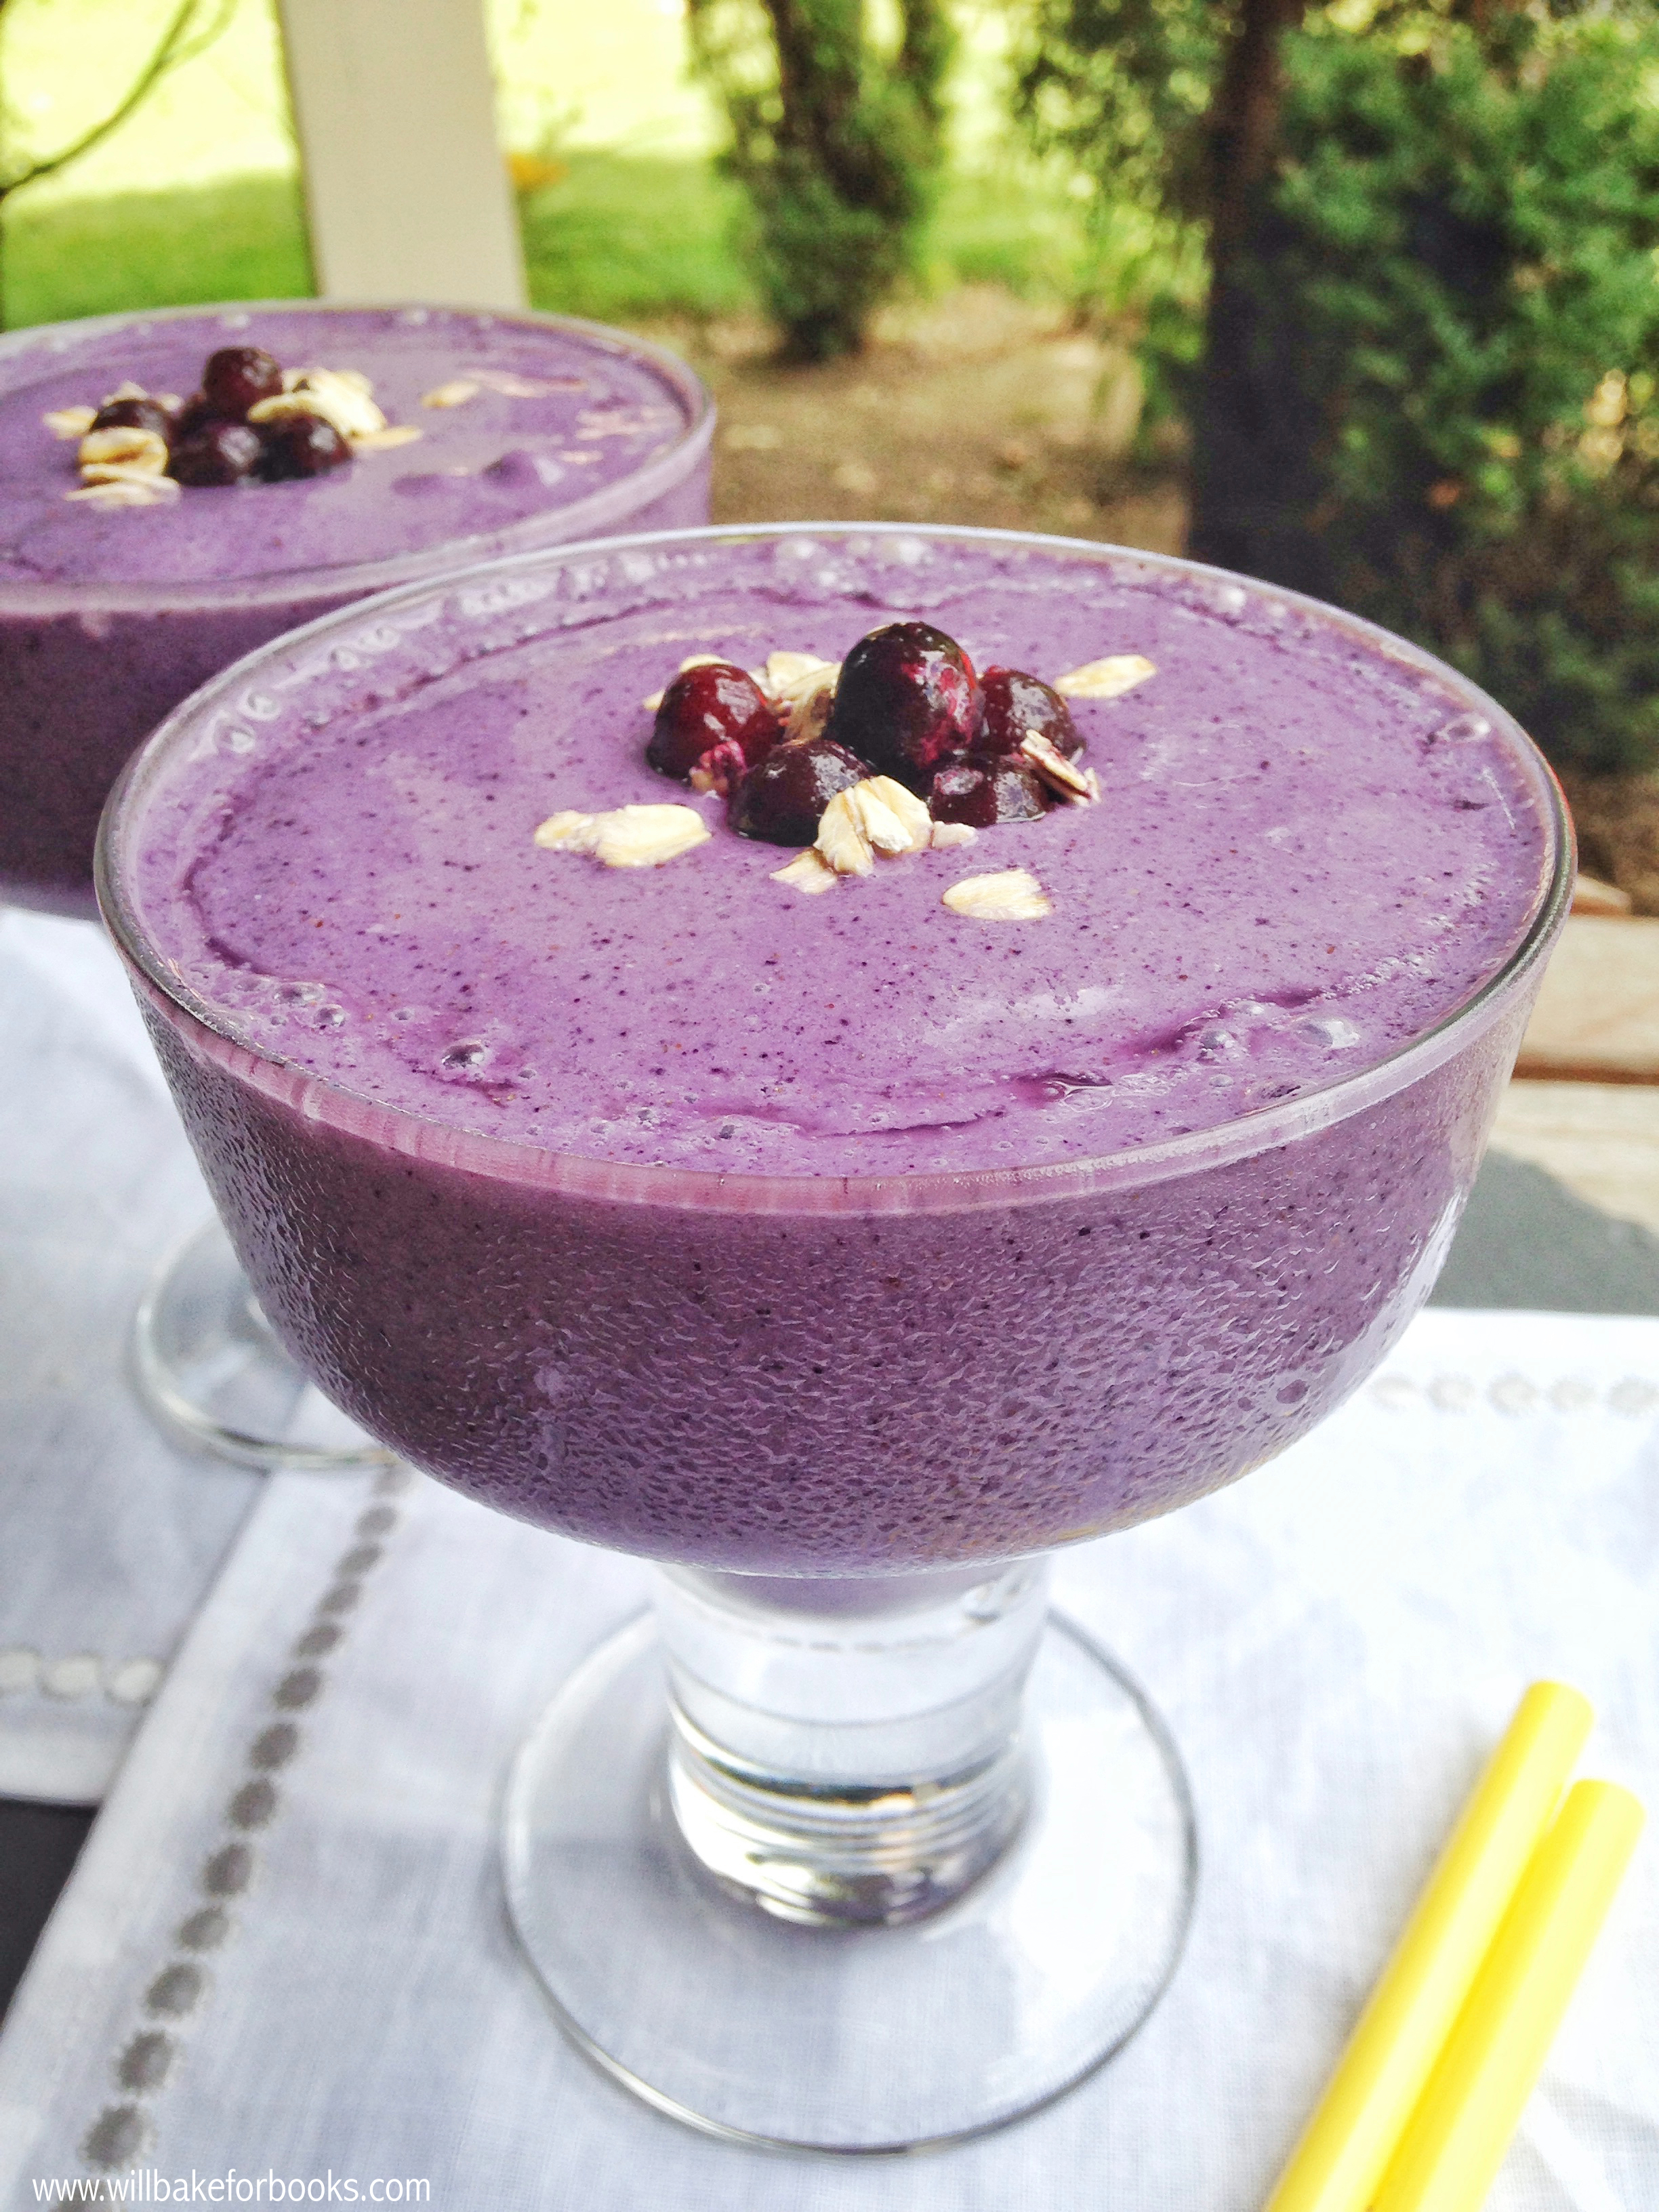 Blueberry Oatmeal Smoothies | www.willbakeforbooks.com